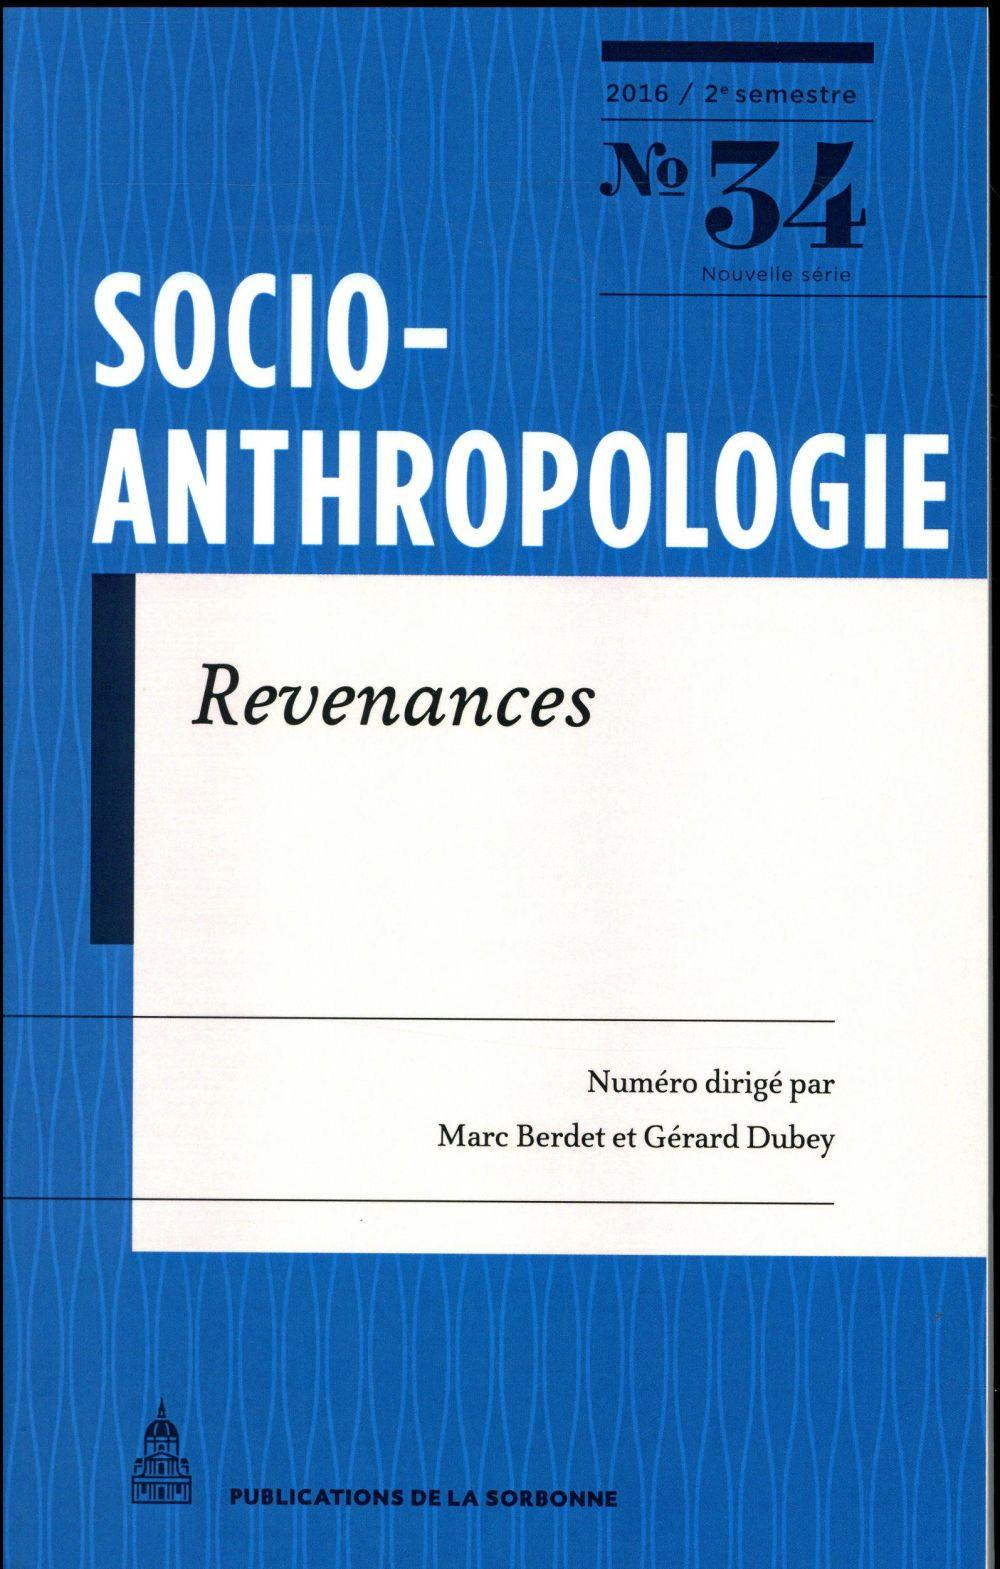 Revue Socio-Anthropologie N.34 ; Revenances  - Revue Socio-Anthropologie